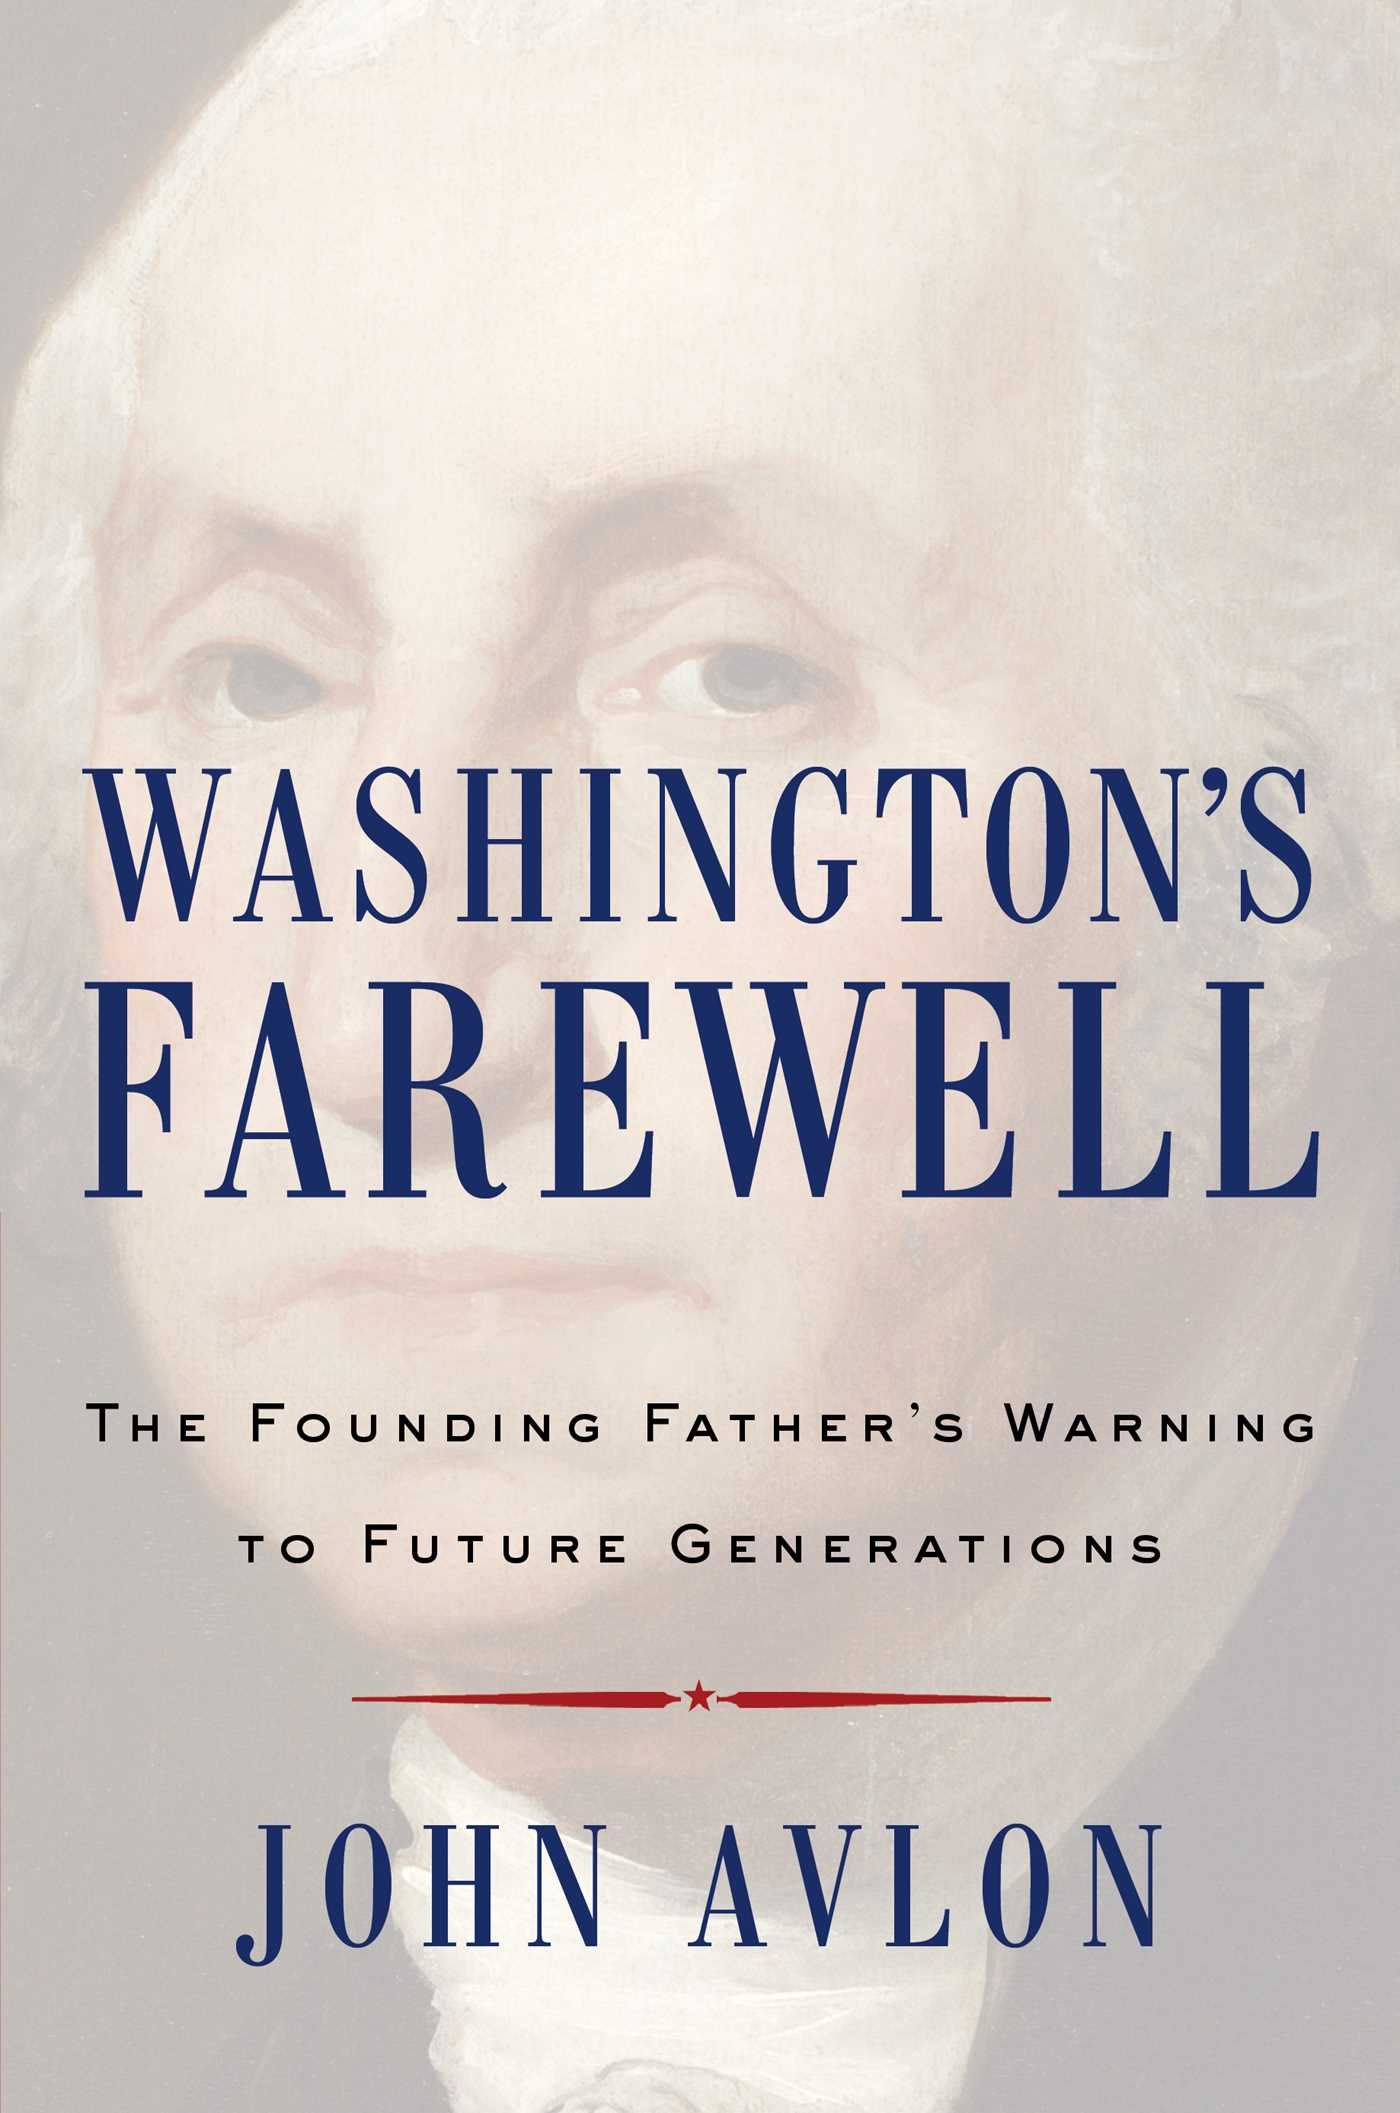 washingtonsfarewellcover